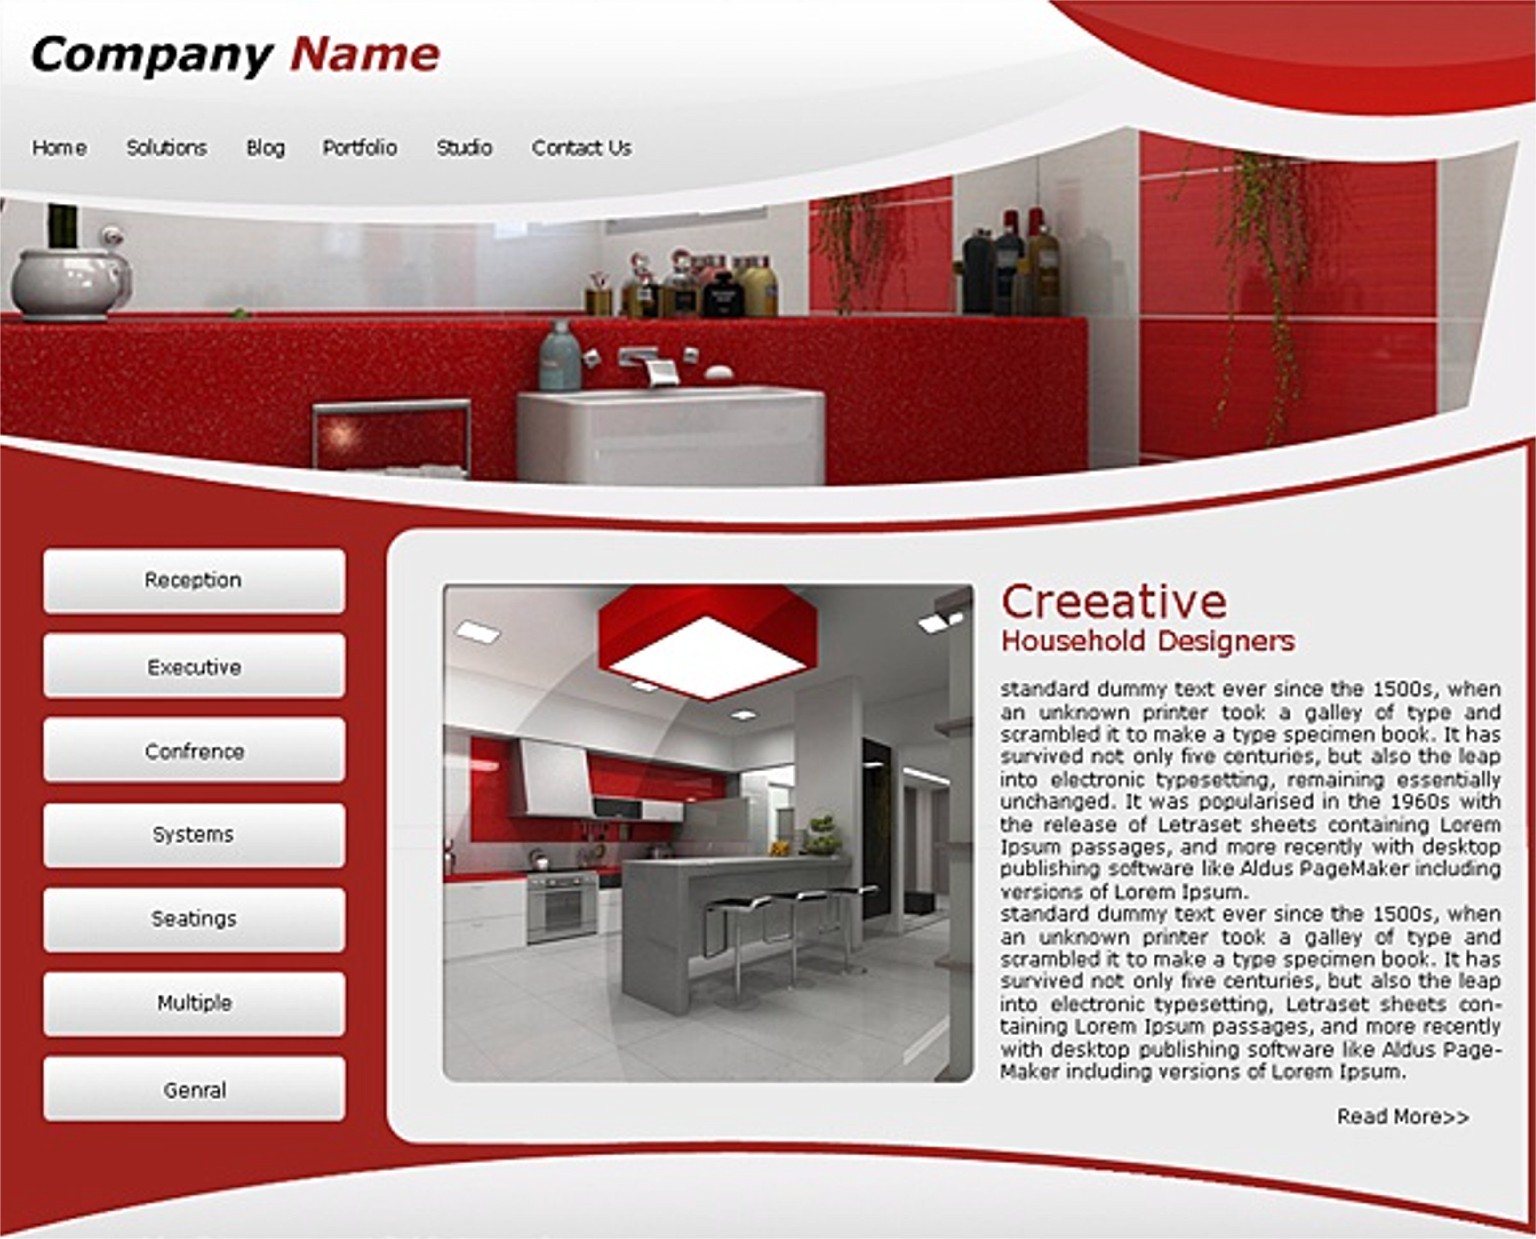 JRL-Enterprises LLC Web Templates10113